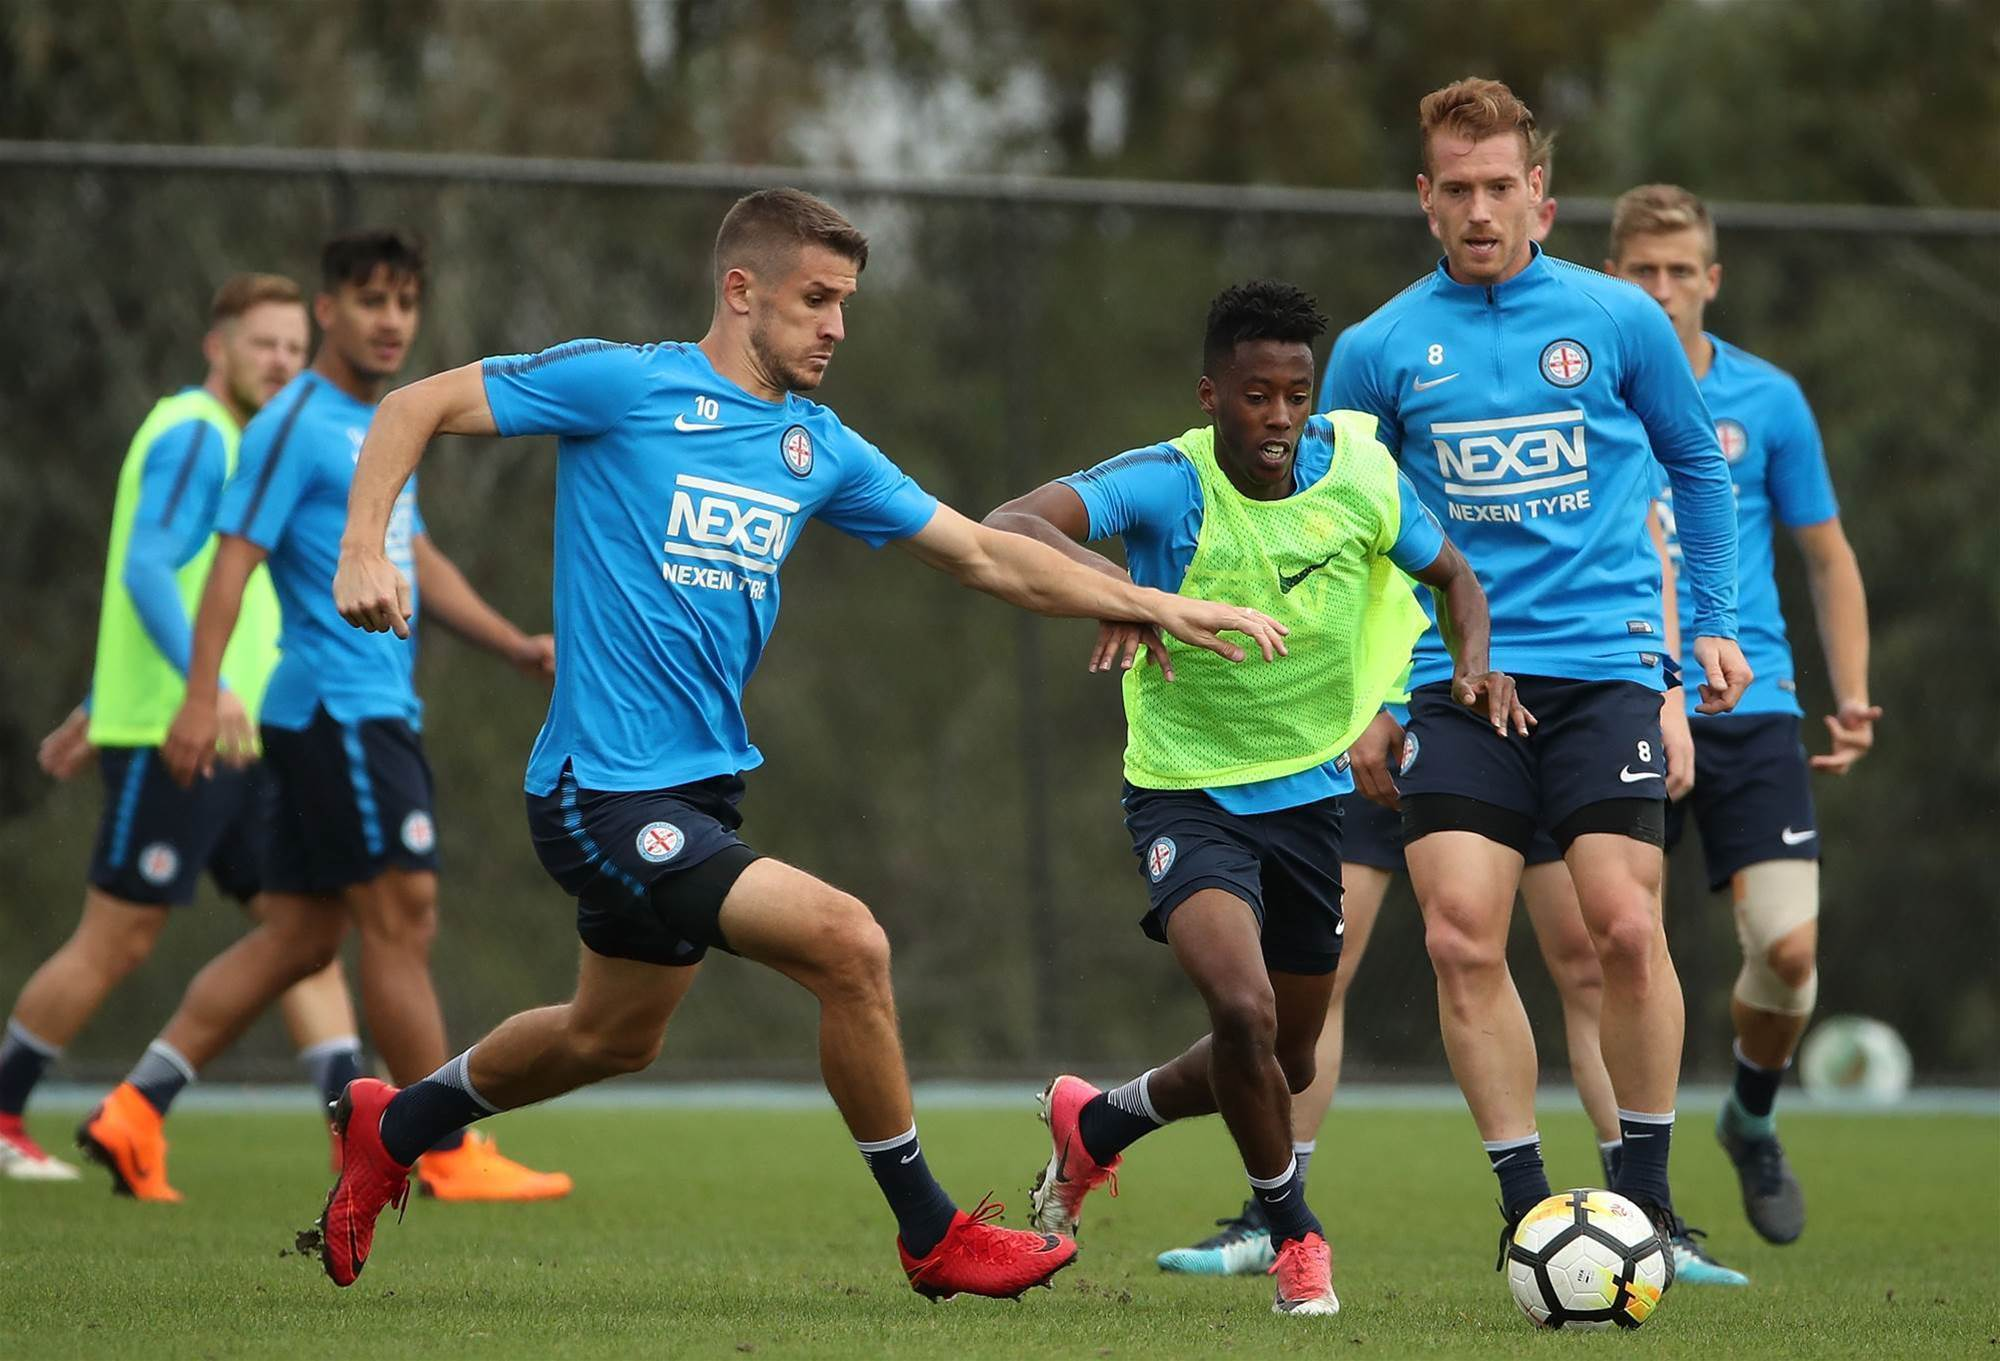 Melbourne City training pic special